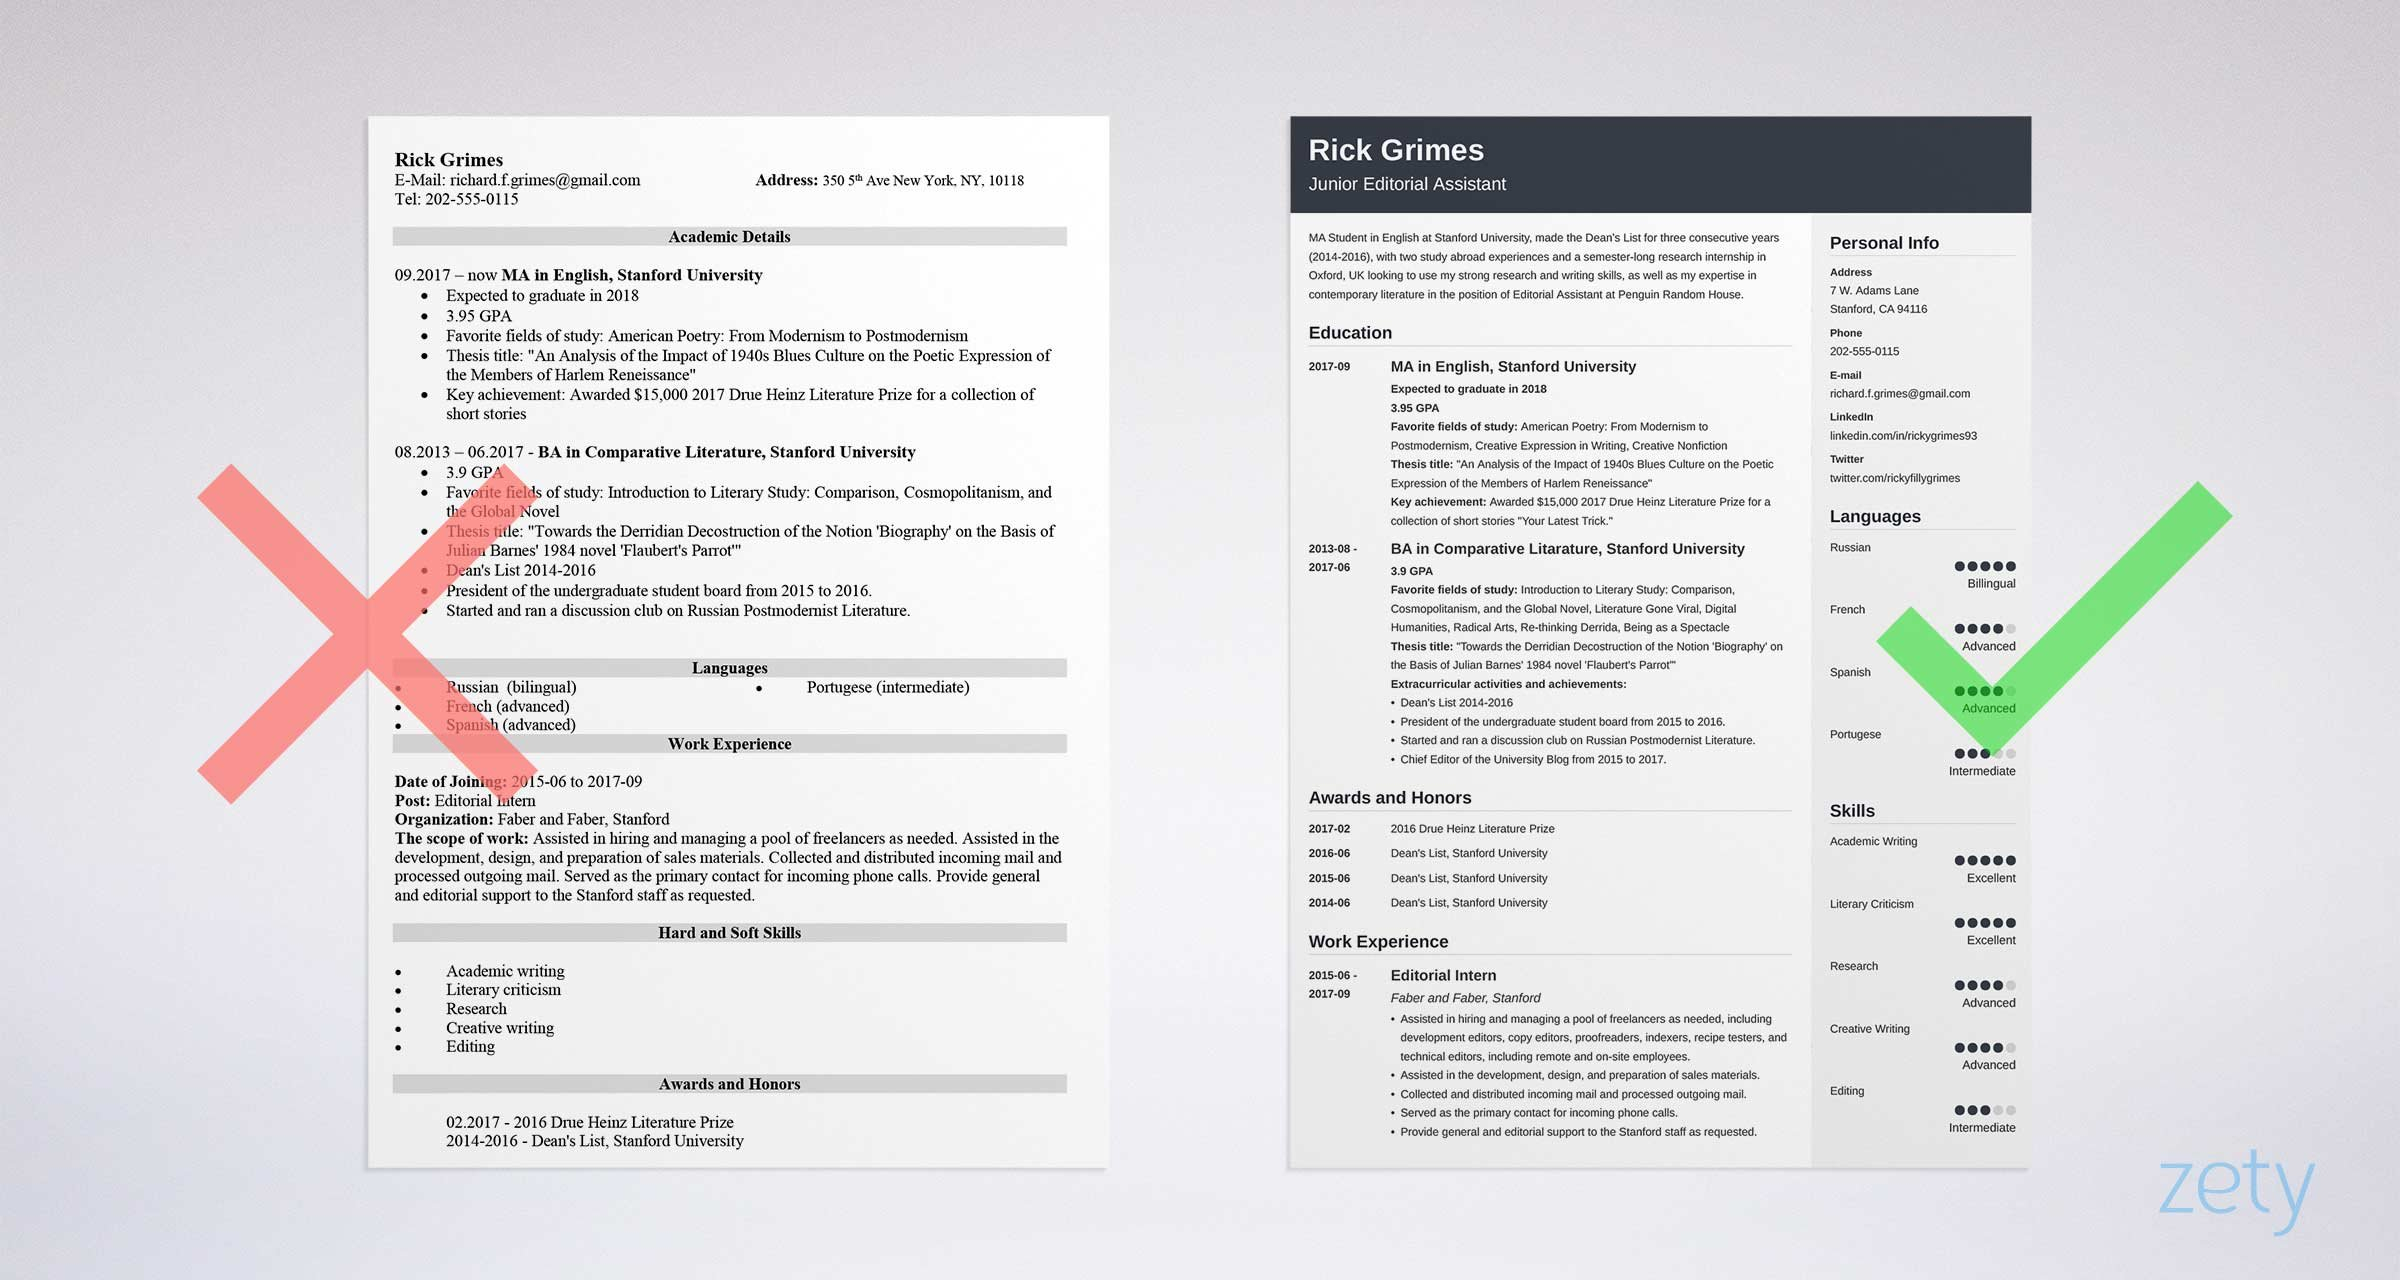 Entry Level Information Technology Resume with No Experience - Entry Level Resume Sample and Plete Guide [ 20 Examples]